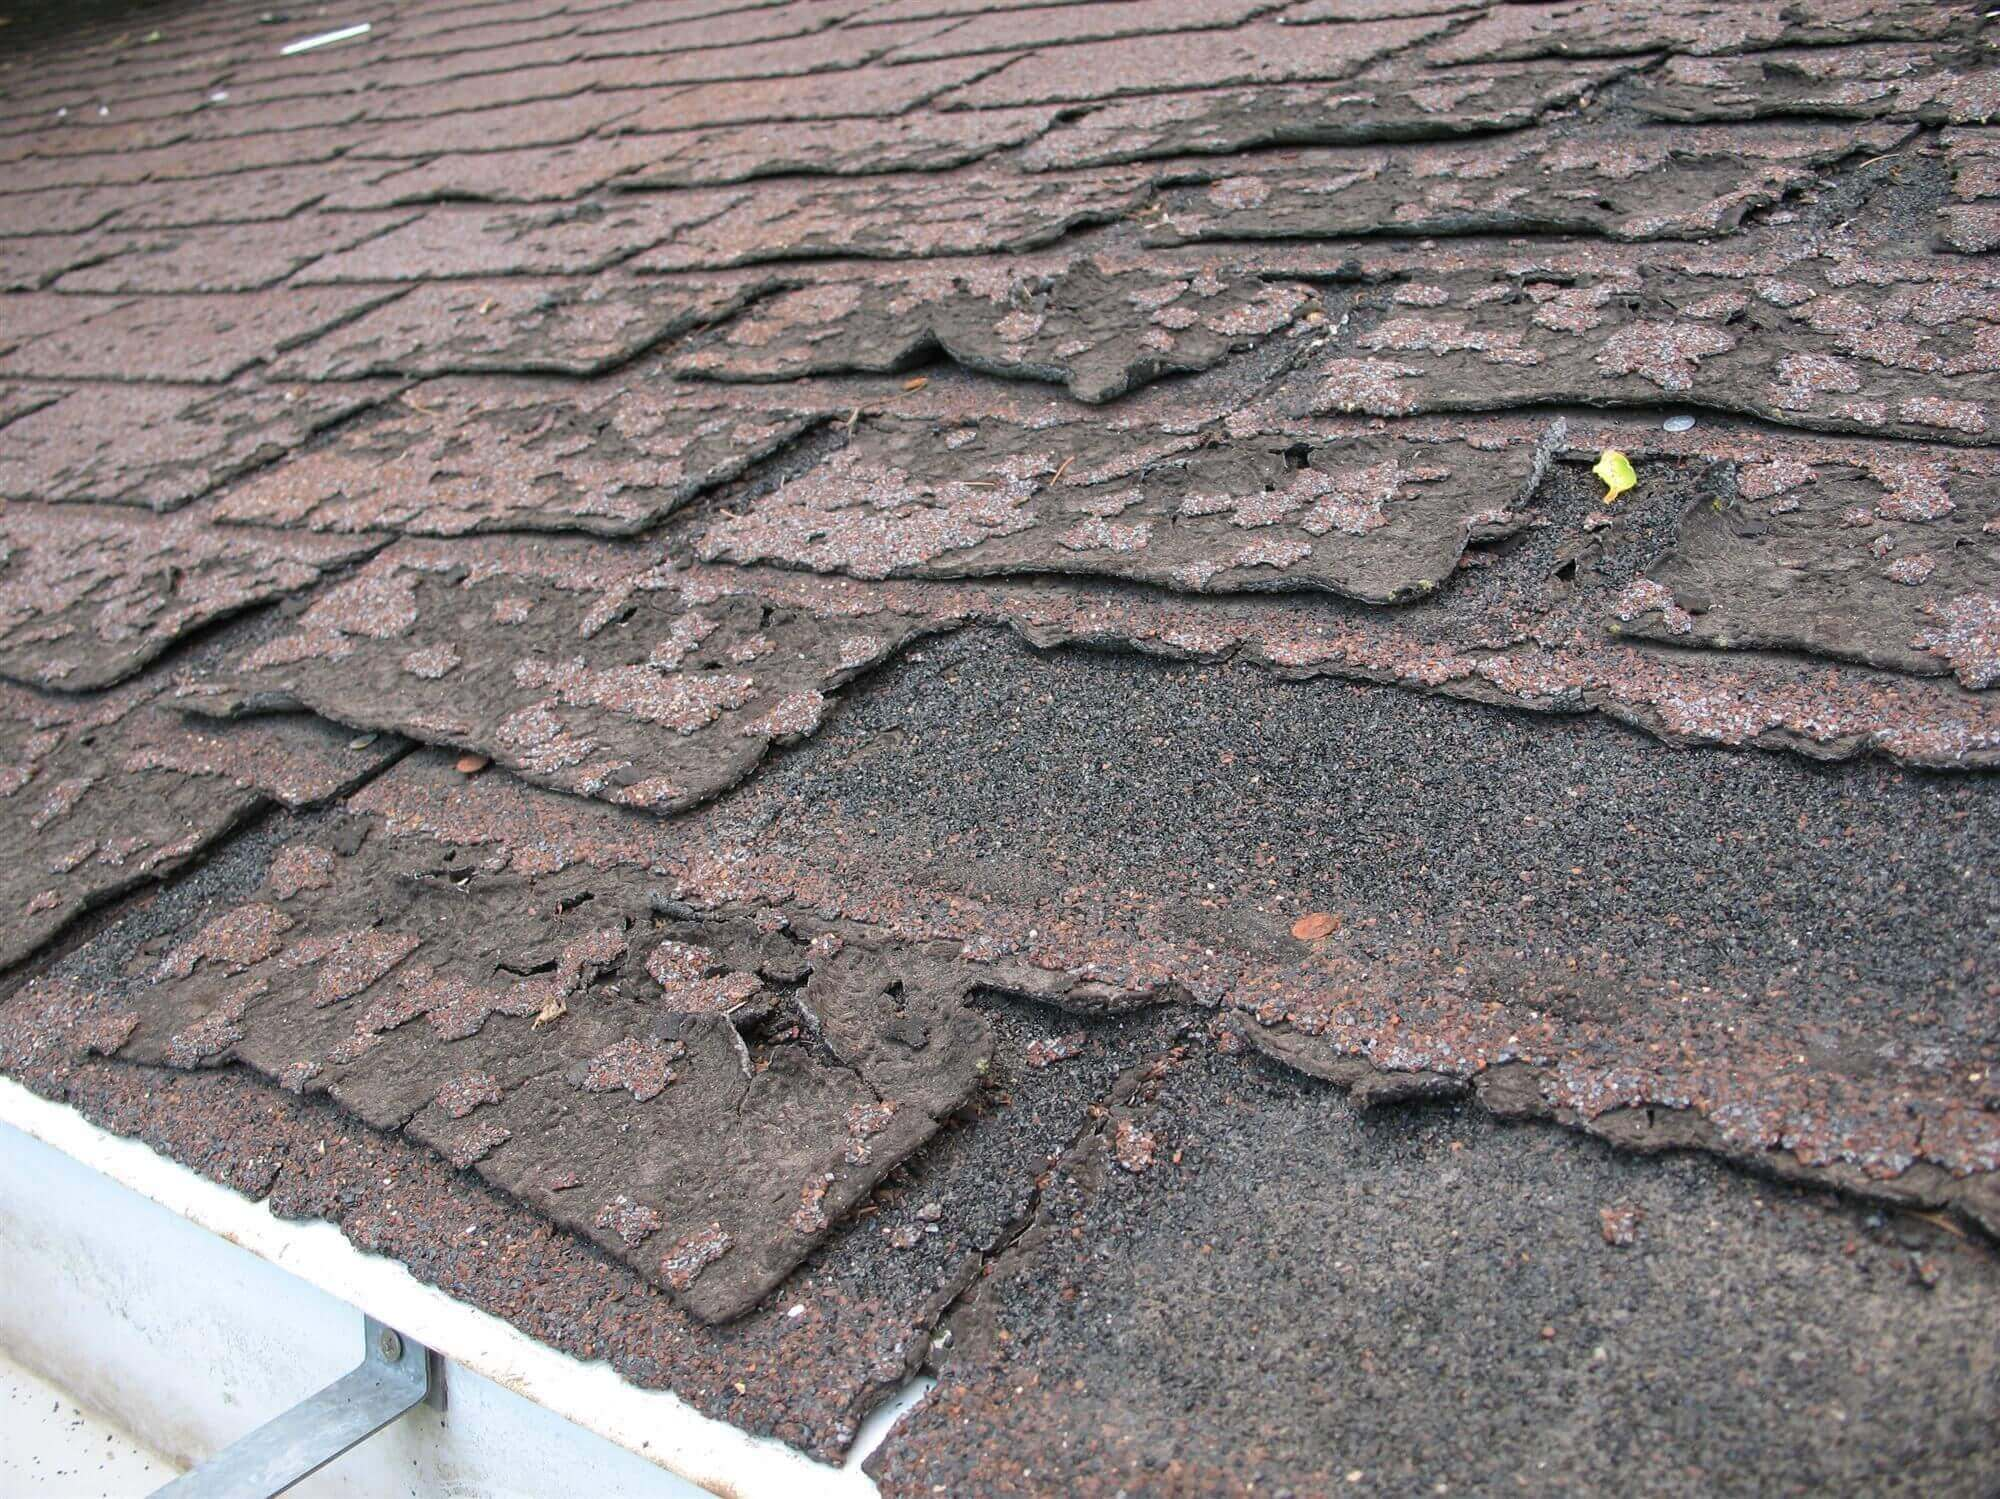 Curling Shingles on a Wisconsin Roof